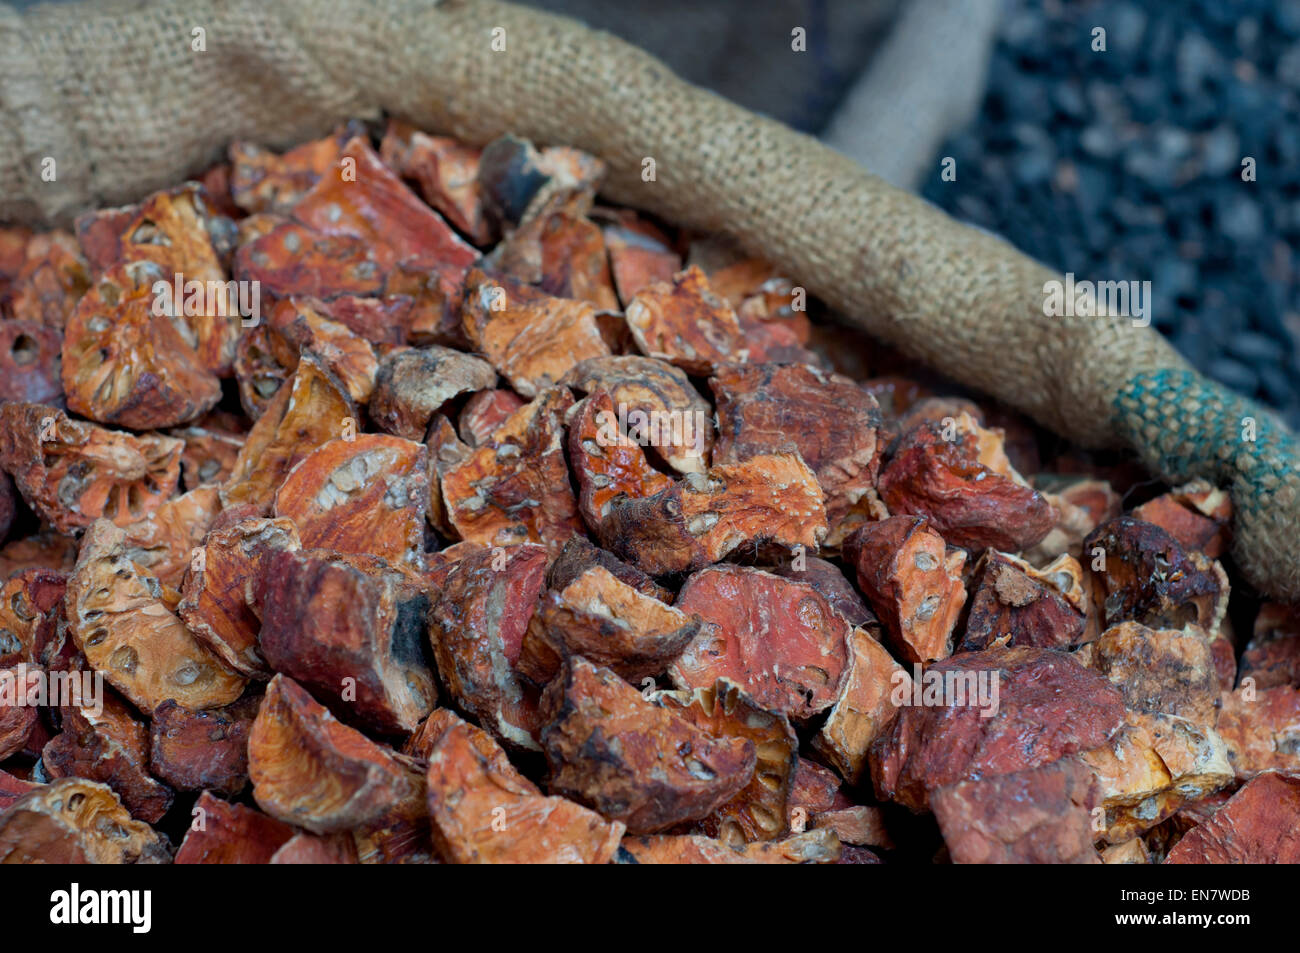 Dried beal for sale at the market - Stock Image